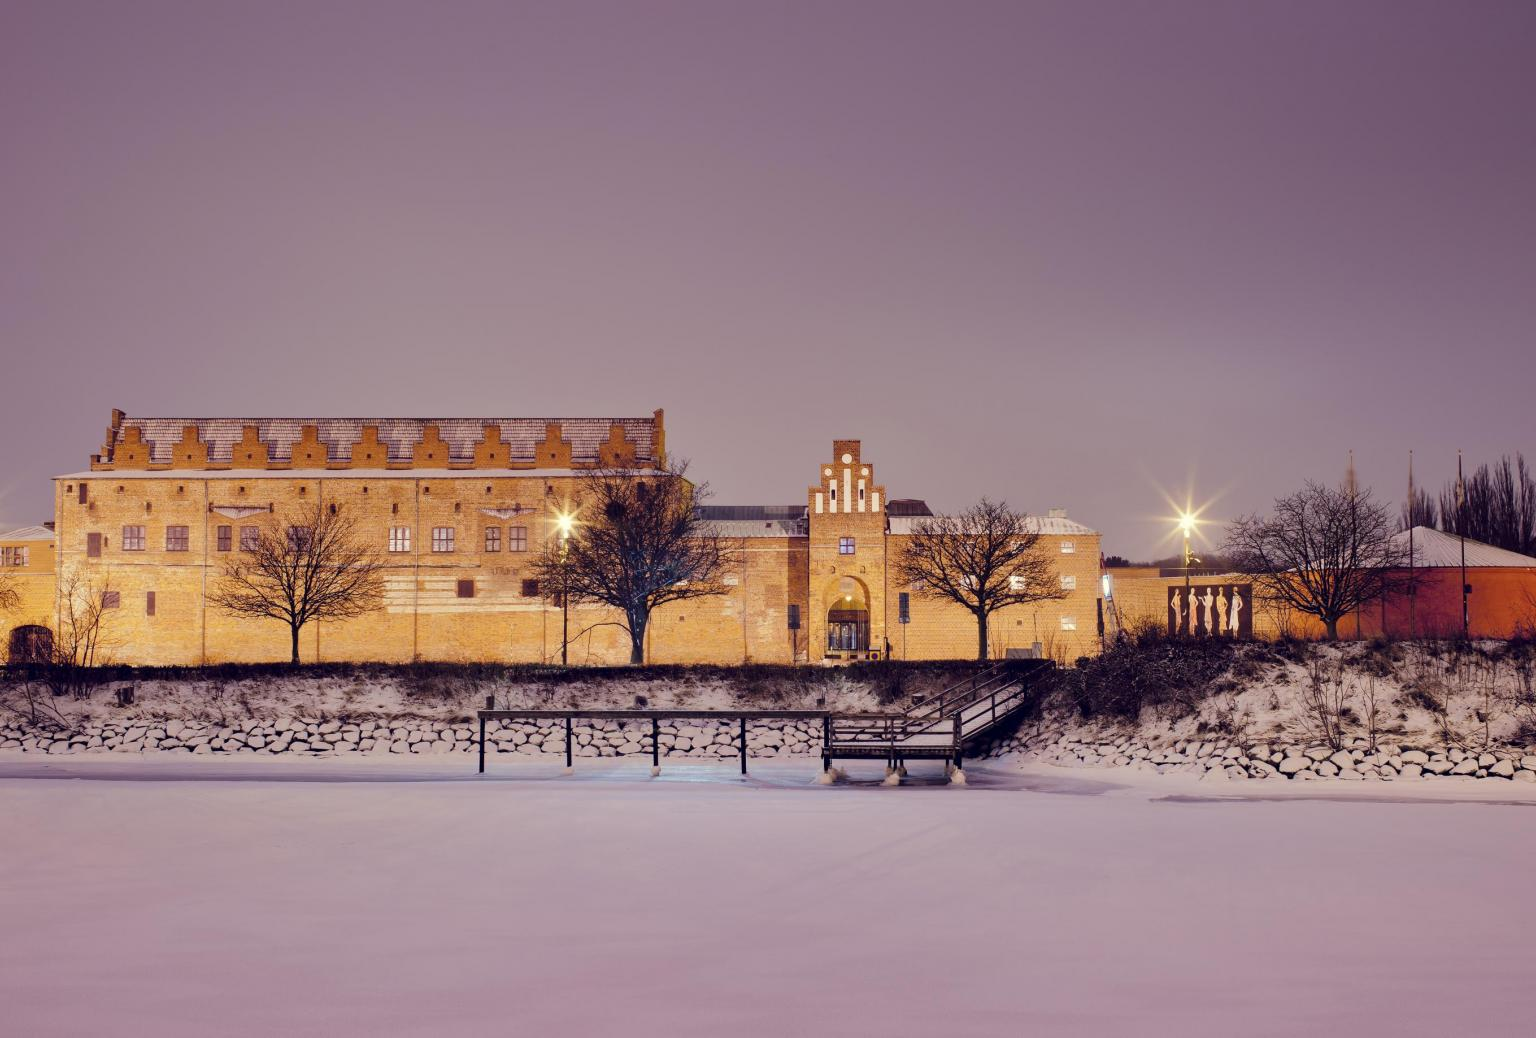 Malmöhus castle in the wintertime covered with snow at night